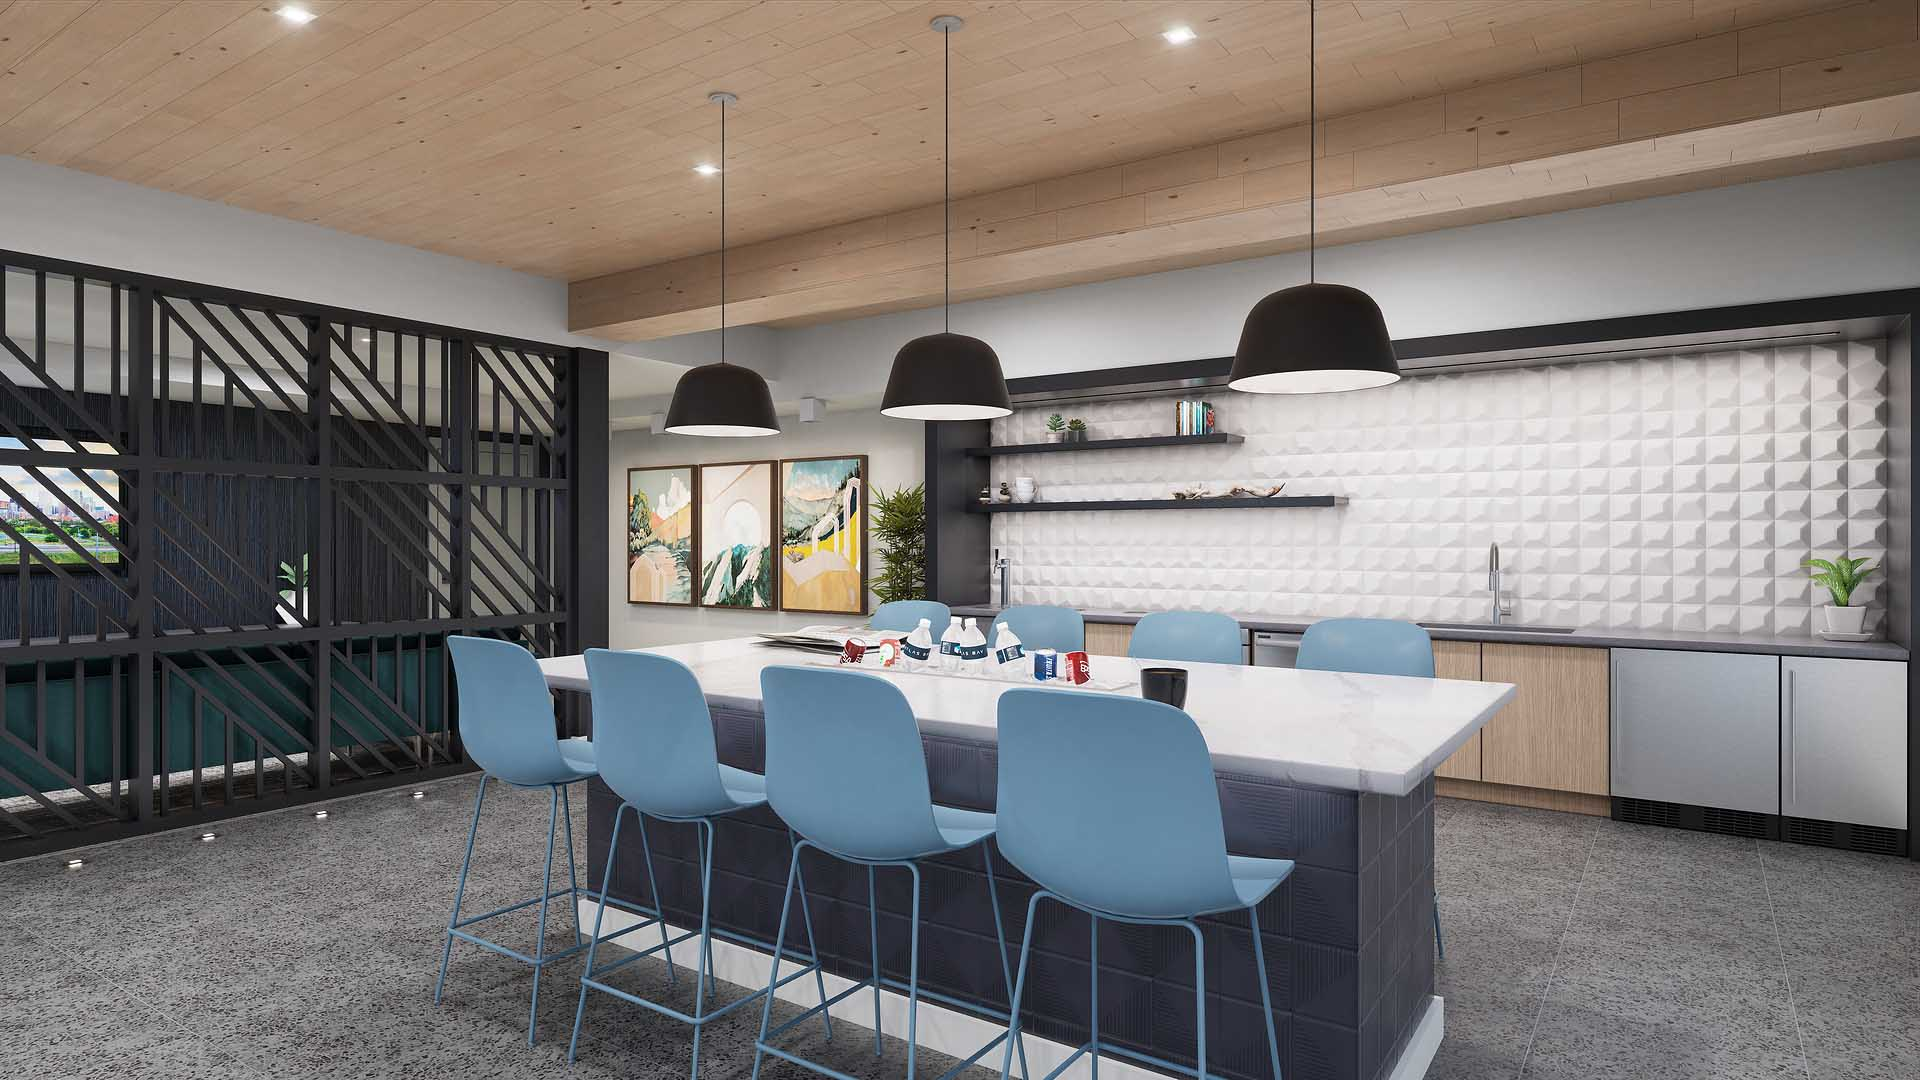 A rendering of an apartment clubroom